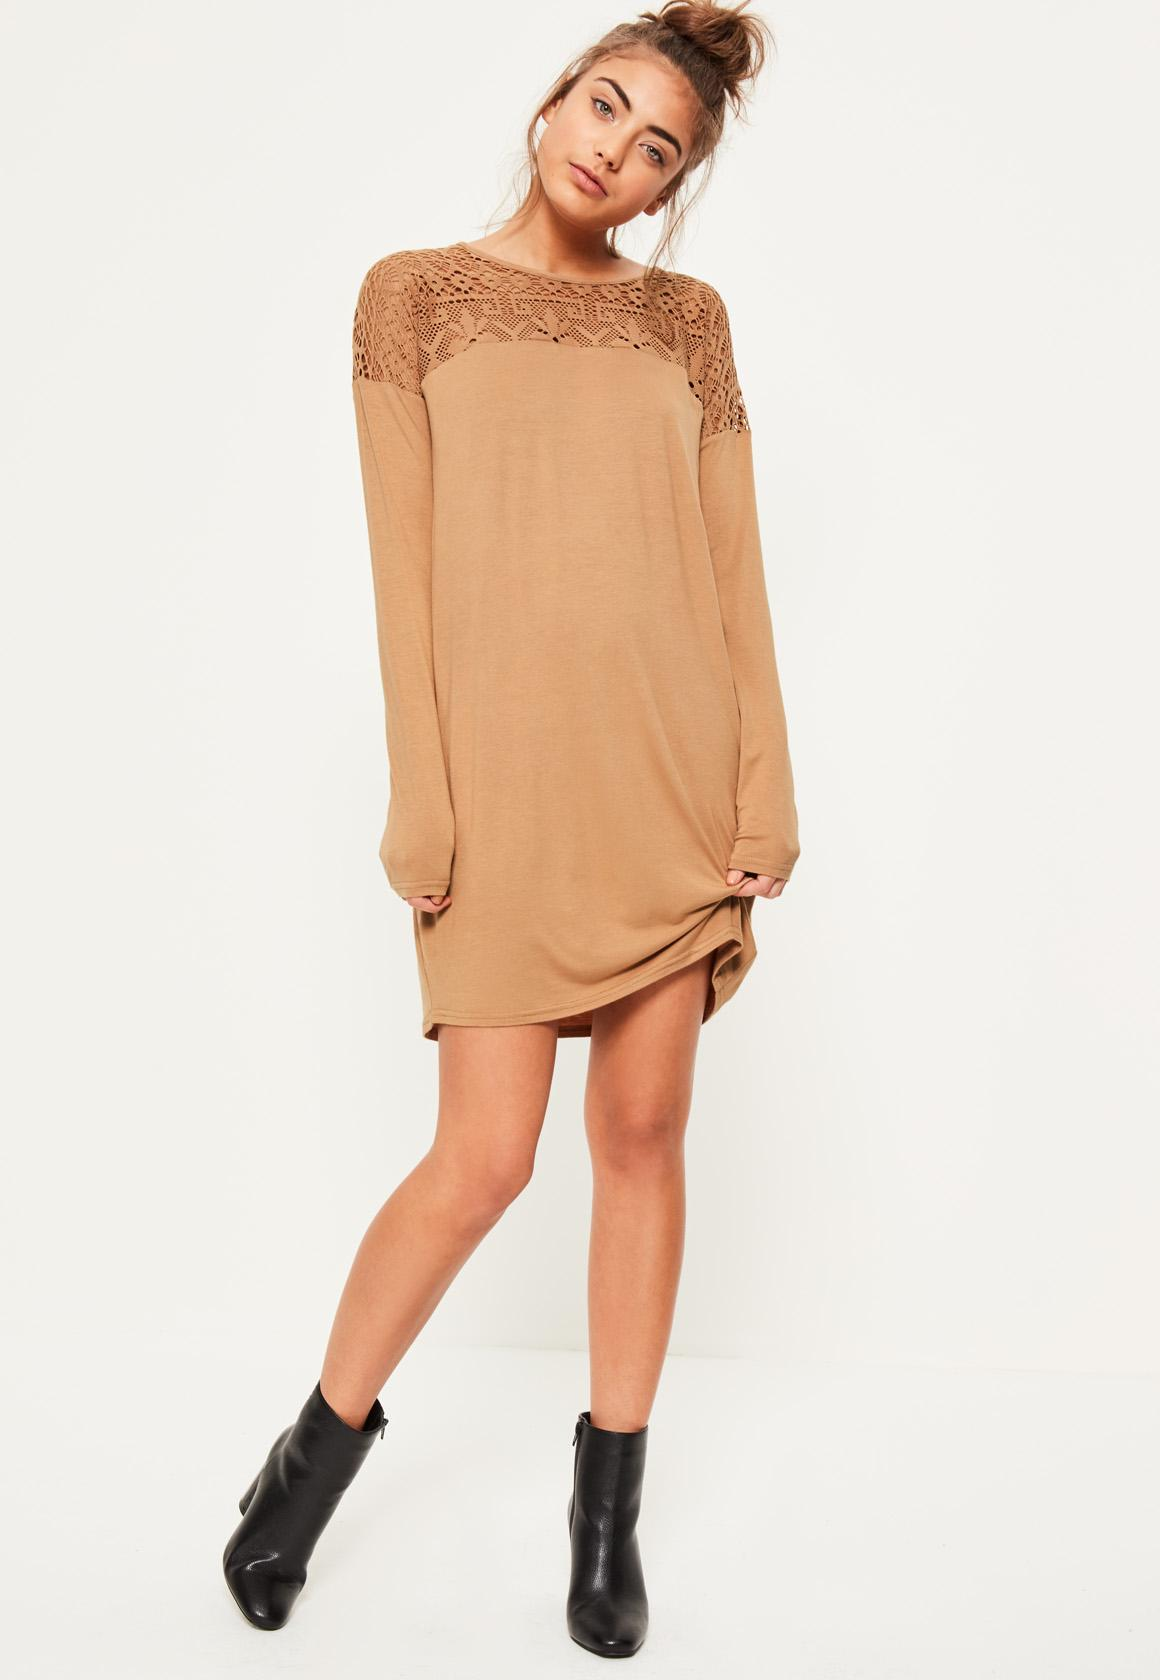 Camel Lace Insert Top Long Sleeve Dress | Missguided